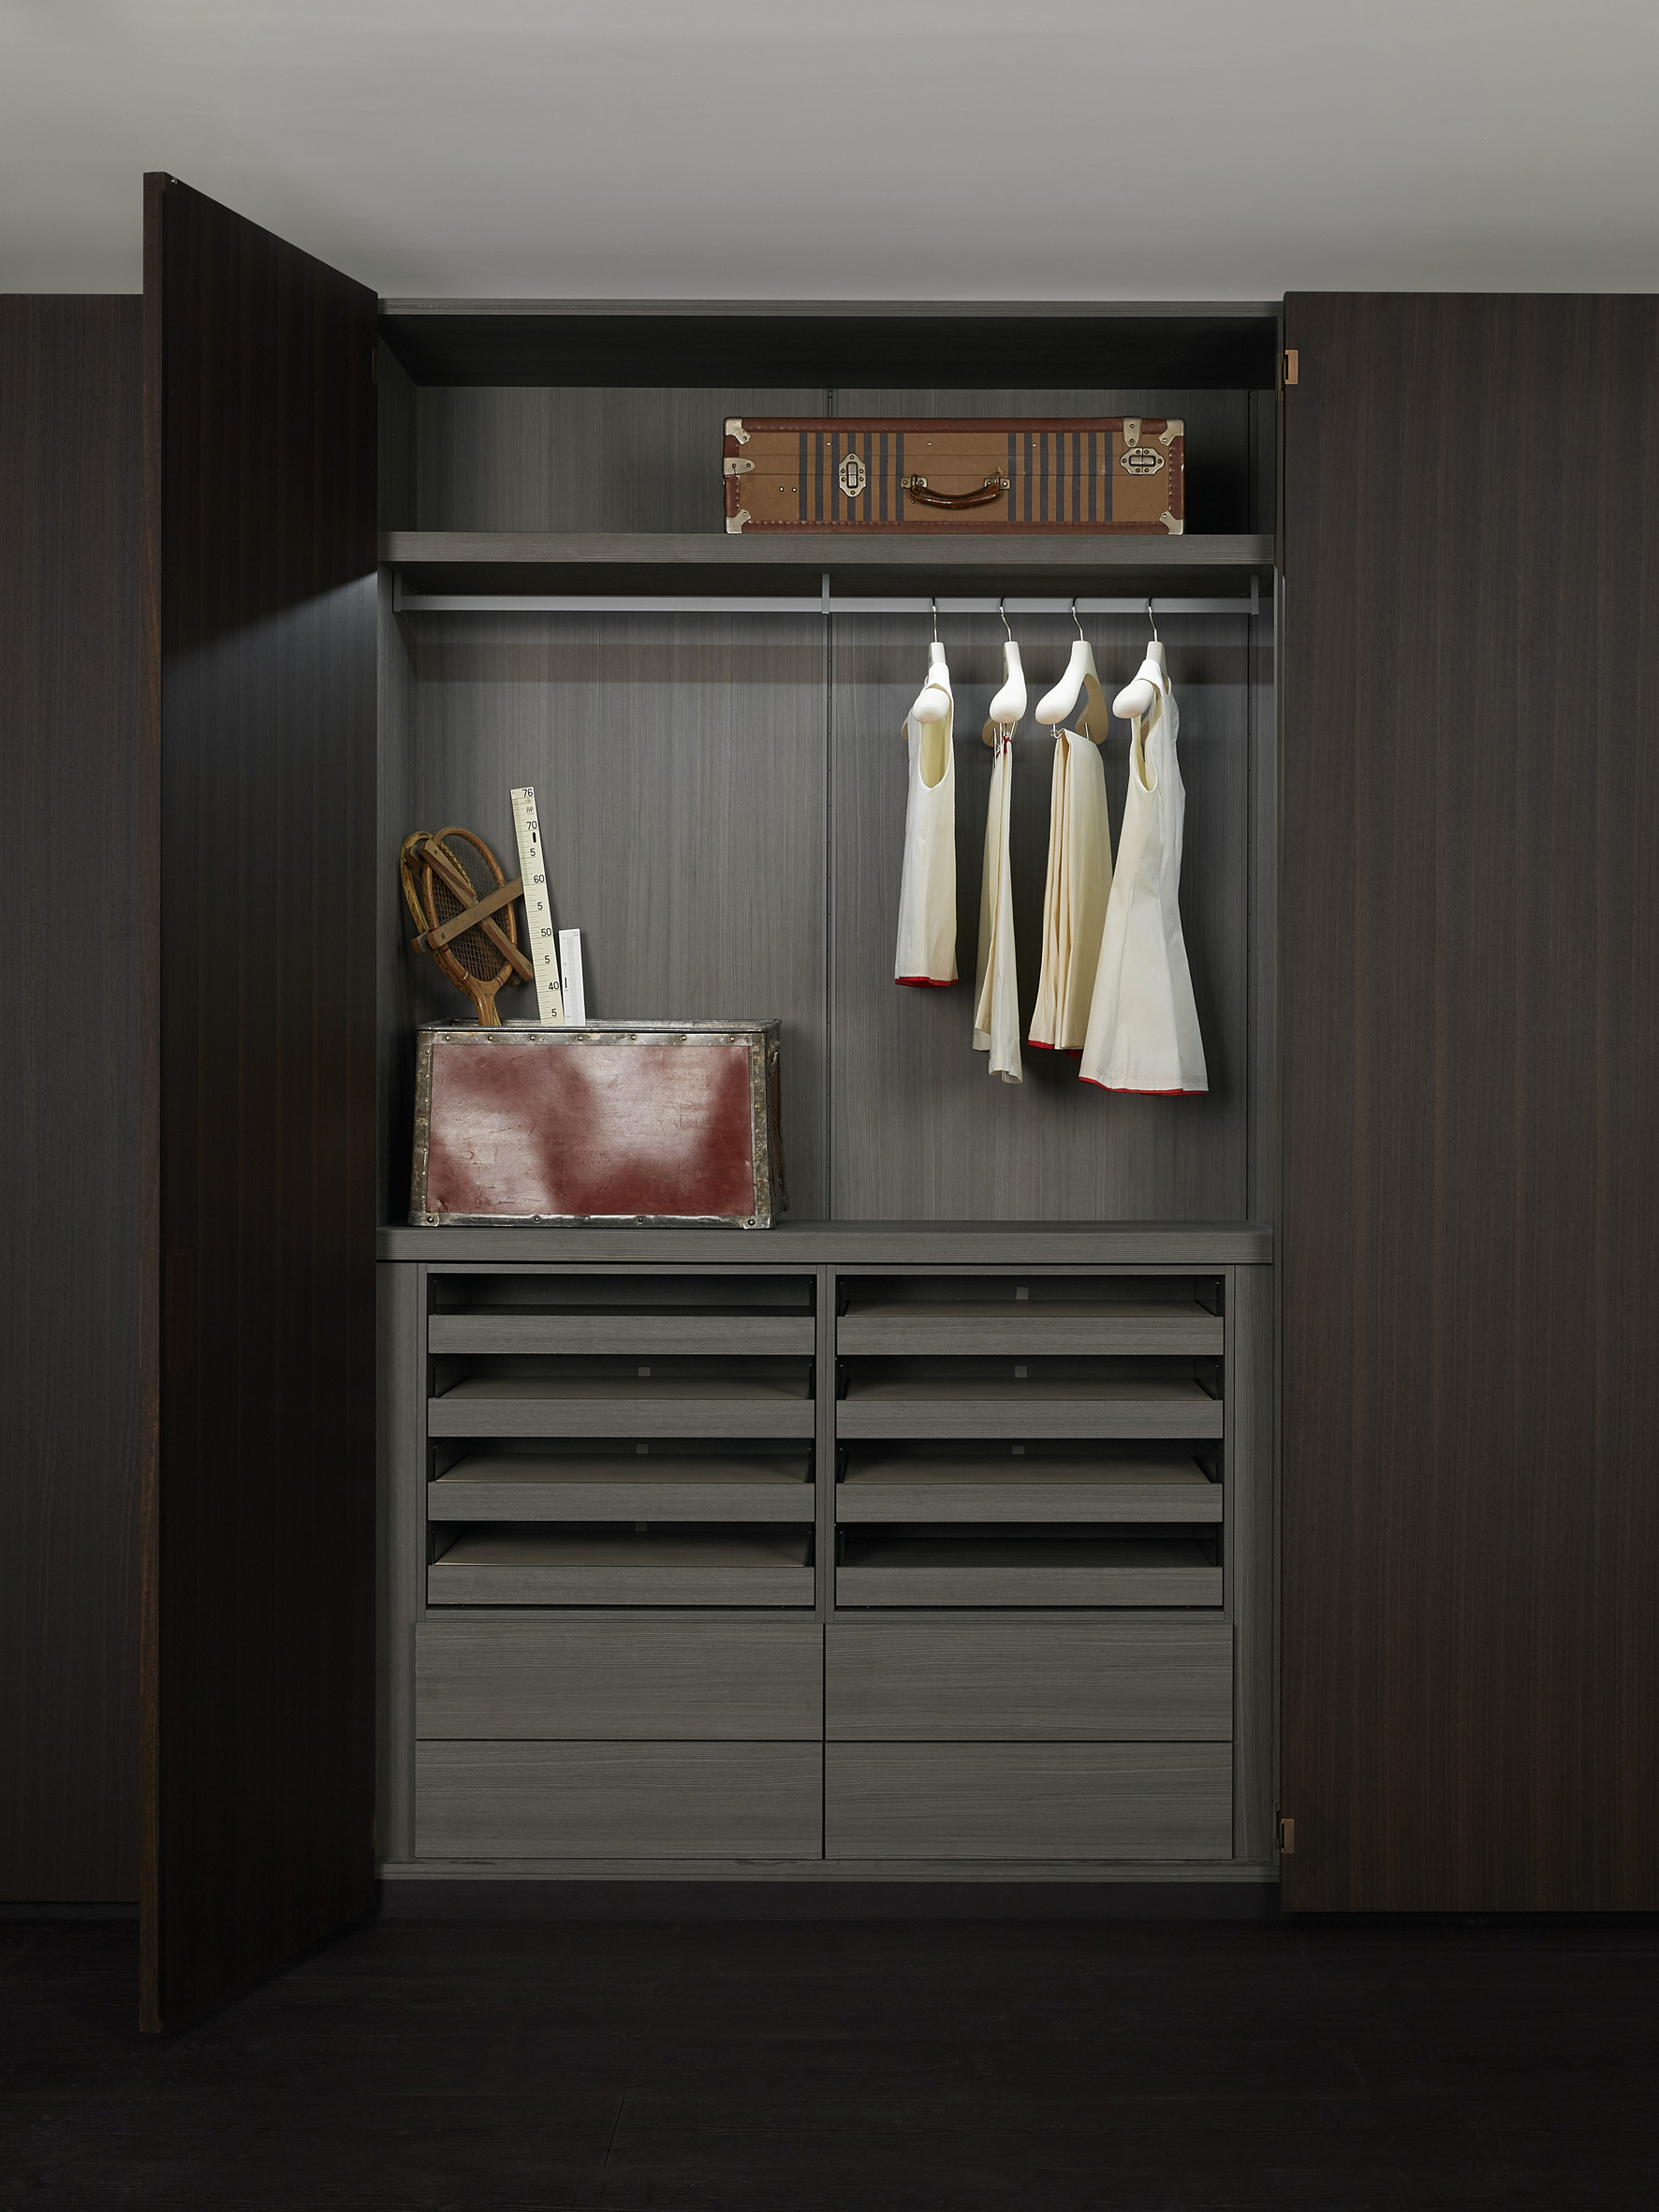 modular with wardrobe drawers s cheap cabinet storage walmart cabinets or white in srage black